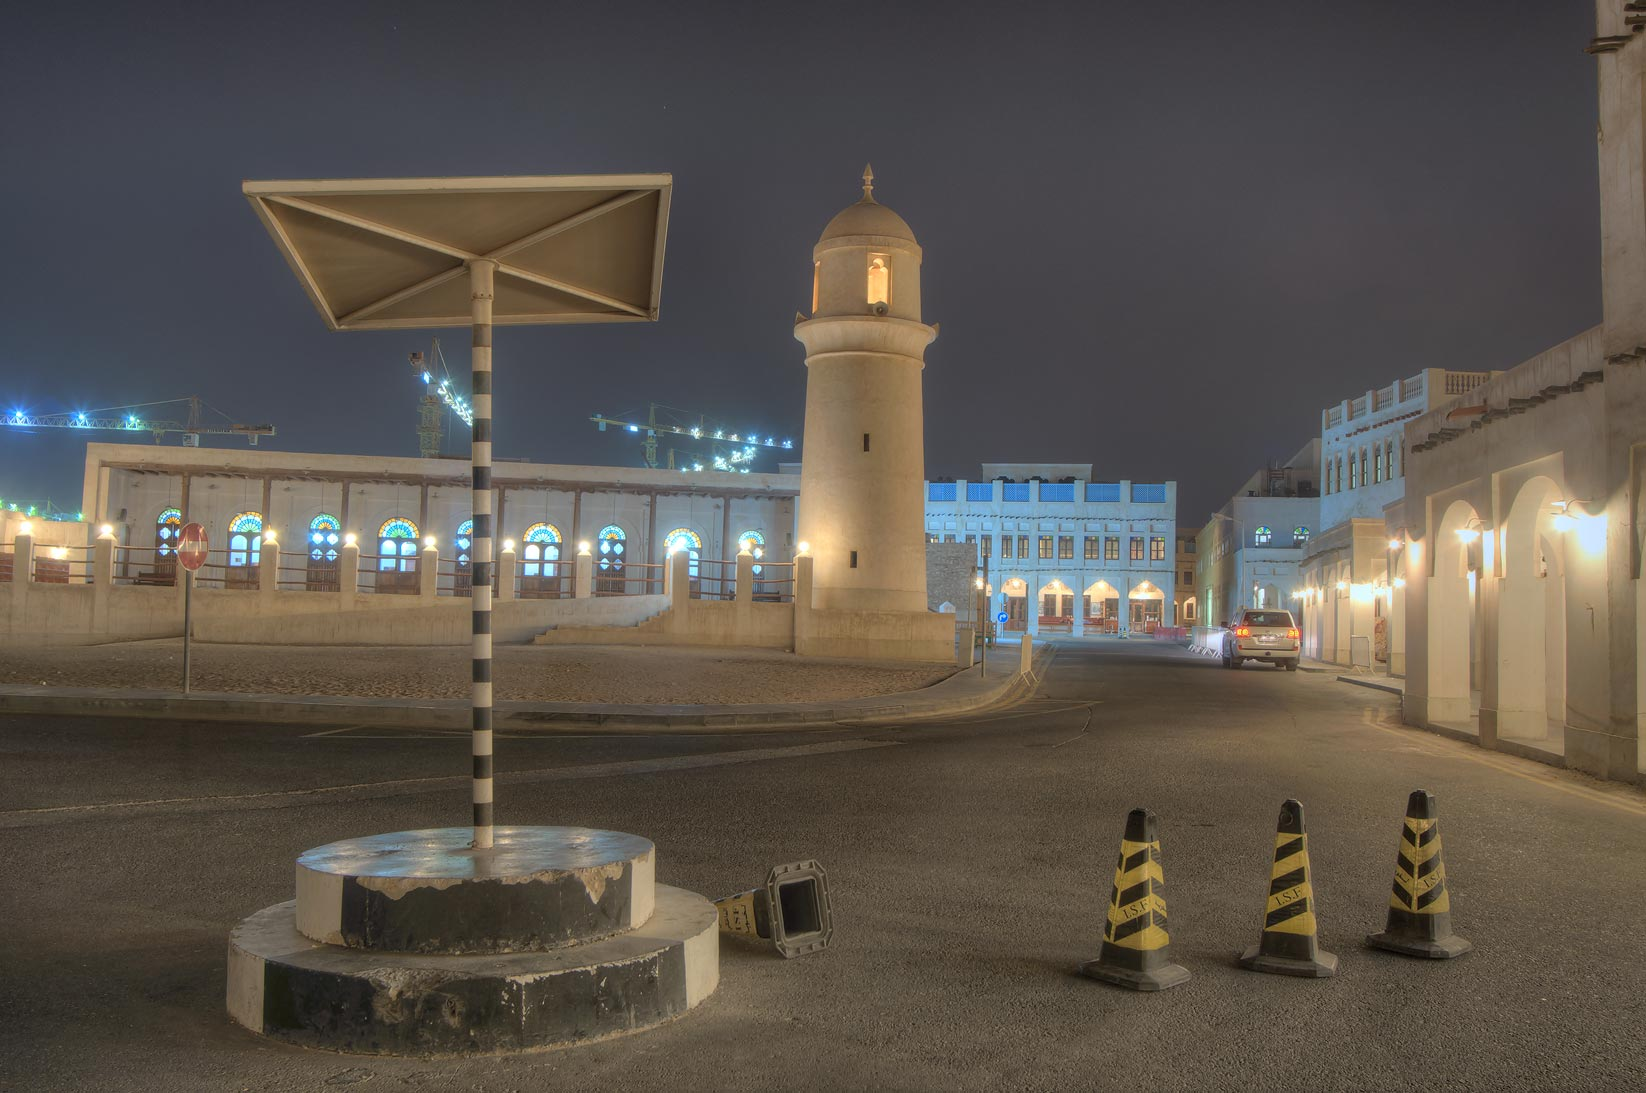 Souq Waqif Mosque and unoccupied police stand in foreground. Doha, Qatar